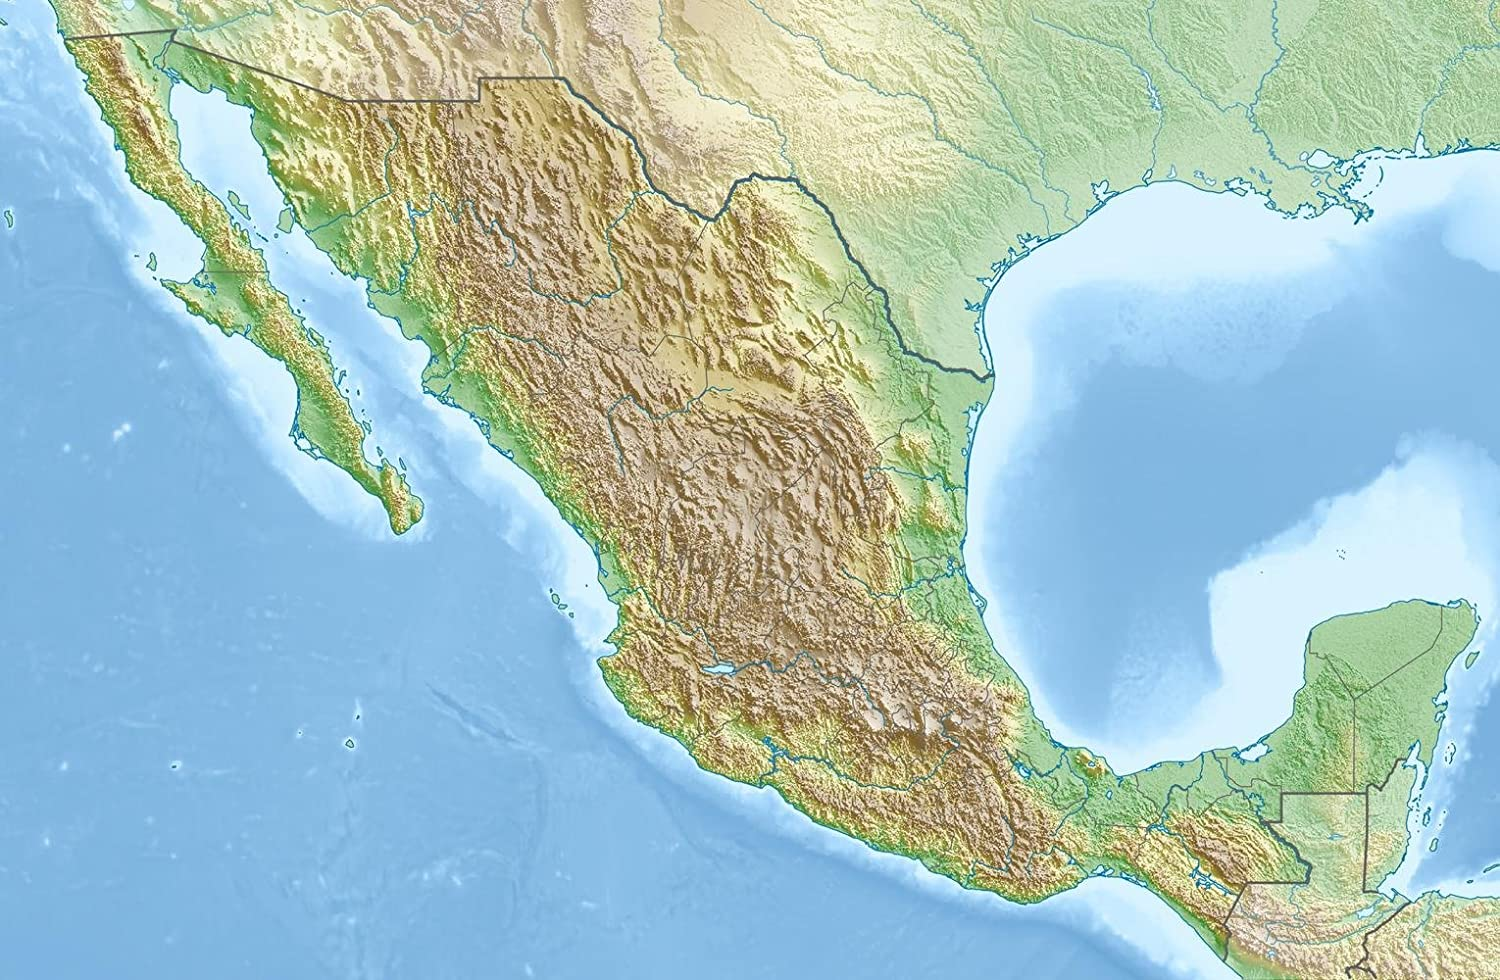 Gifts Delight Laminated 31x20 Poster: Mexico Relief Location map